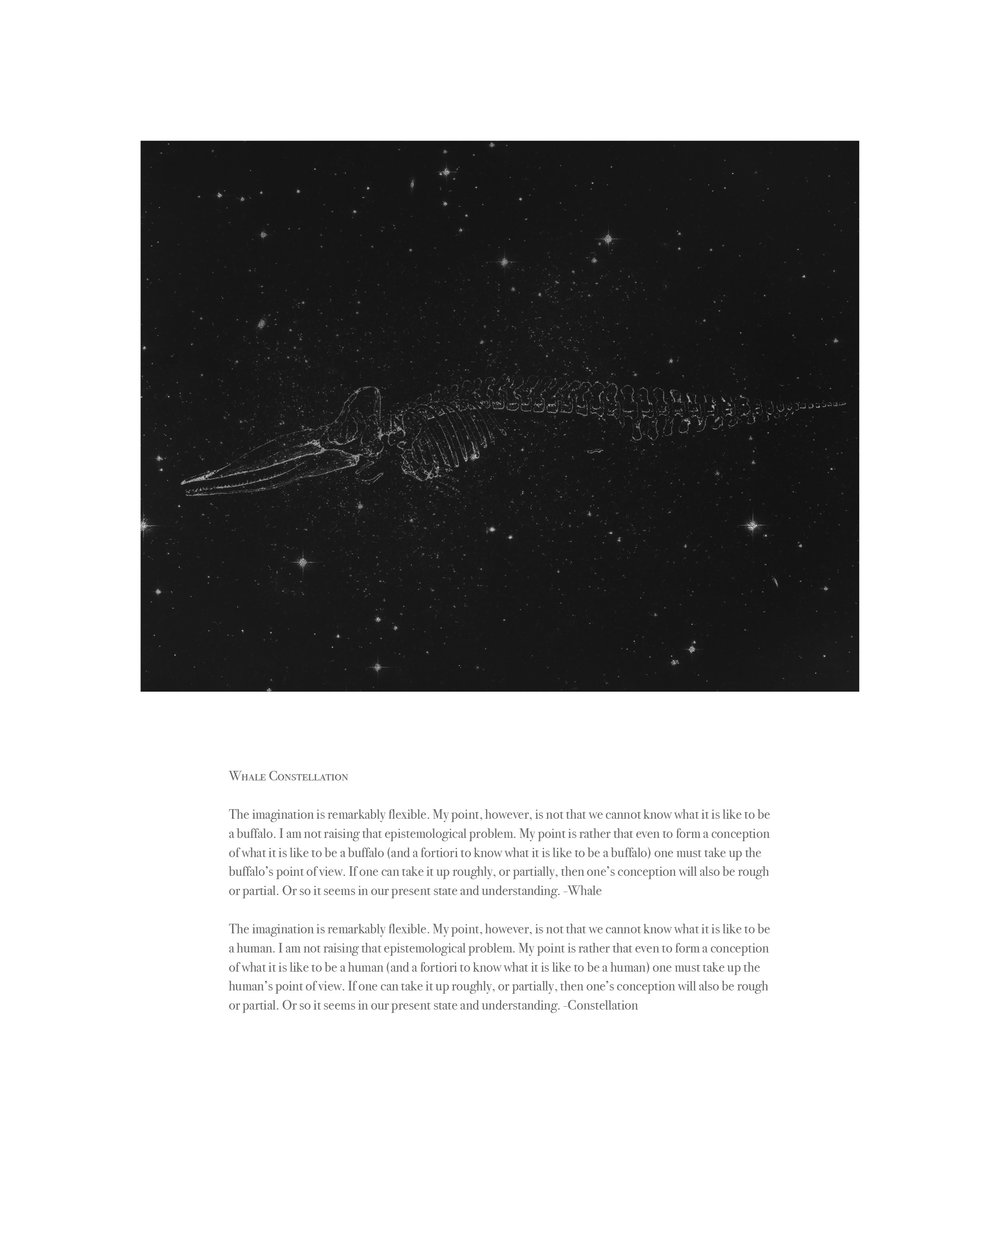 Physeter macrocephalus Constellation